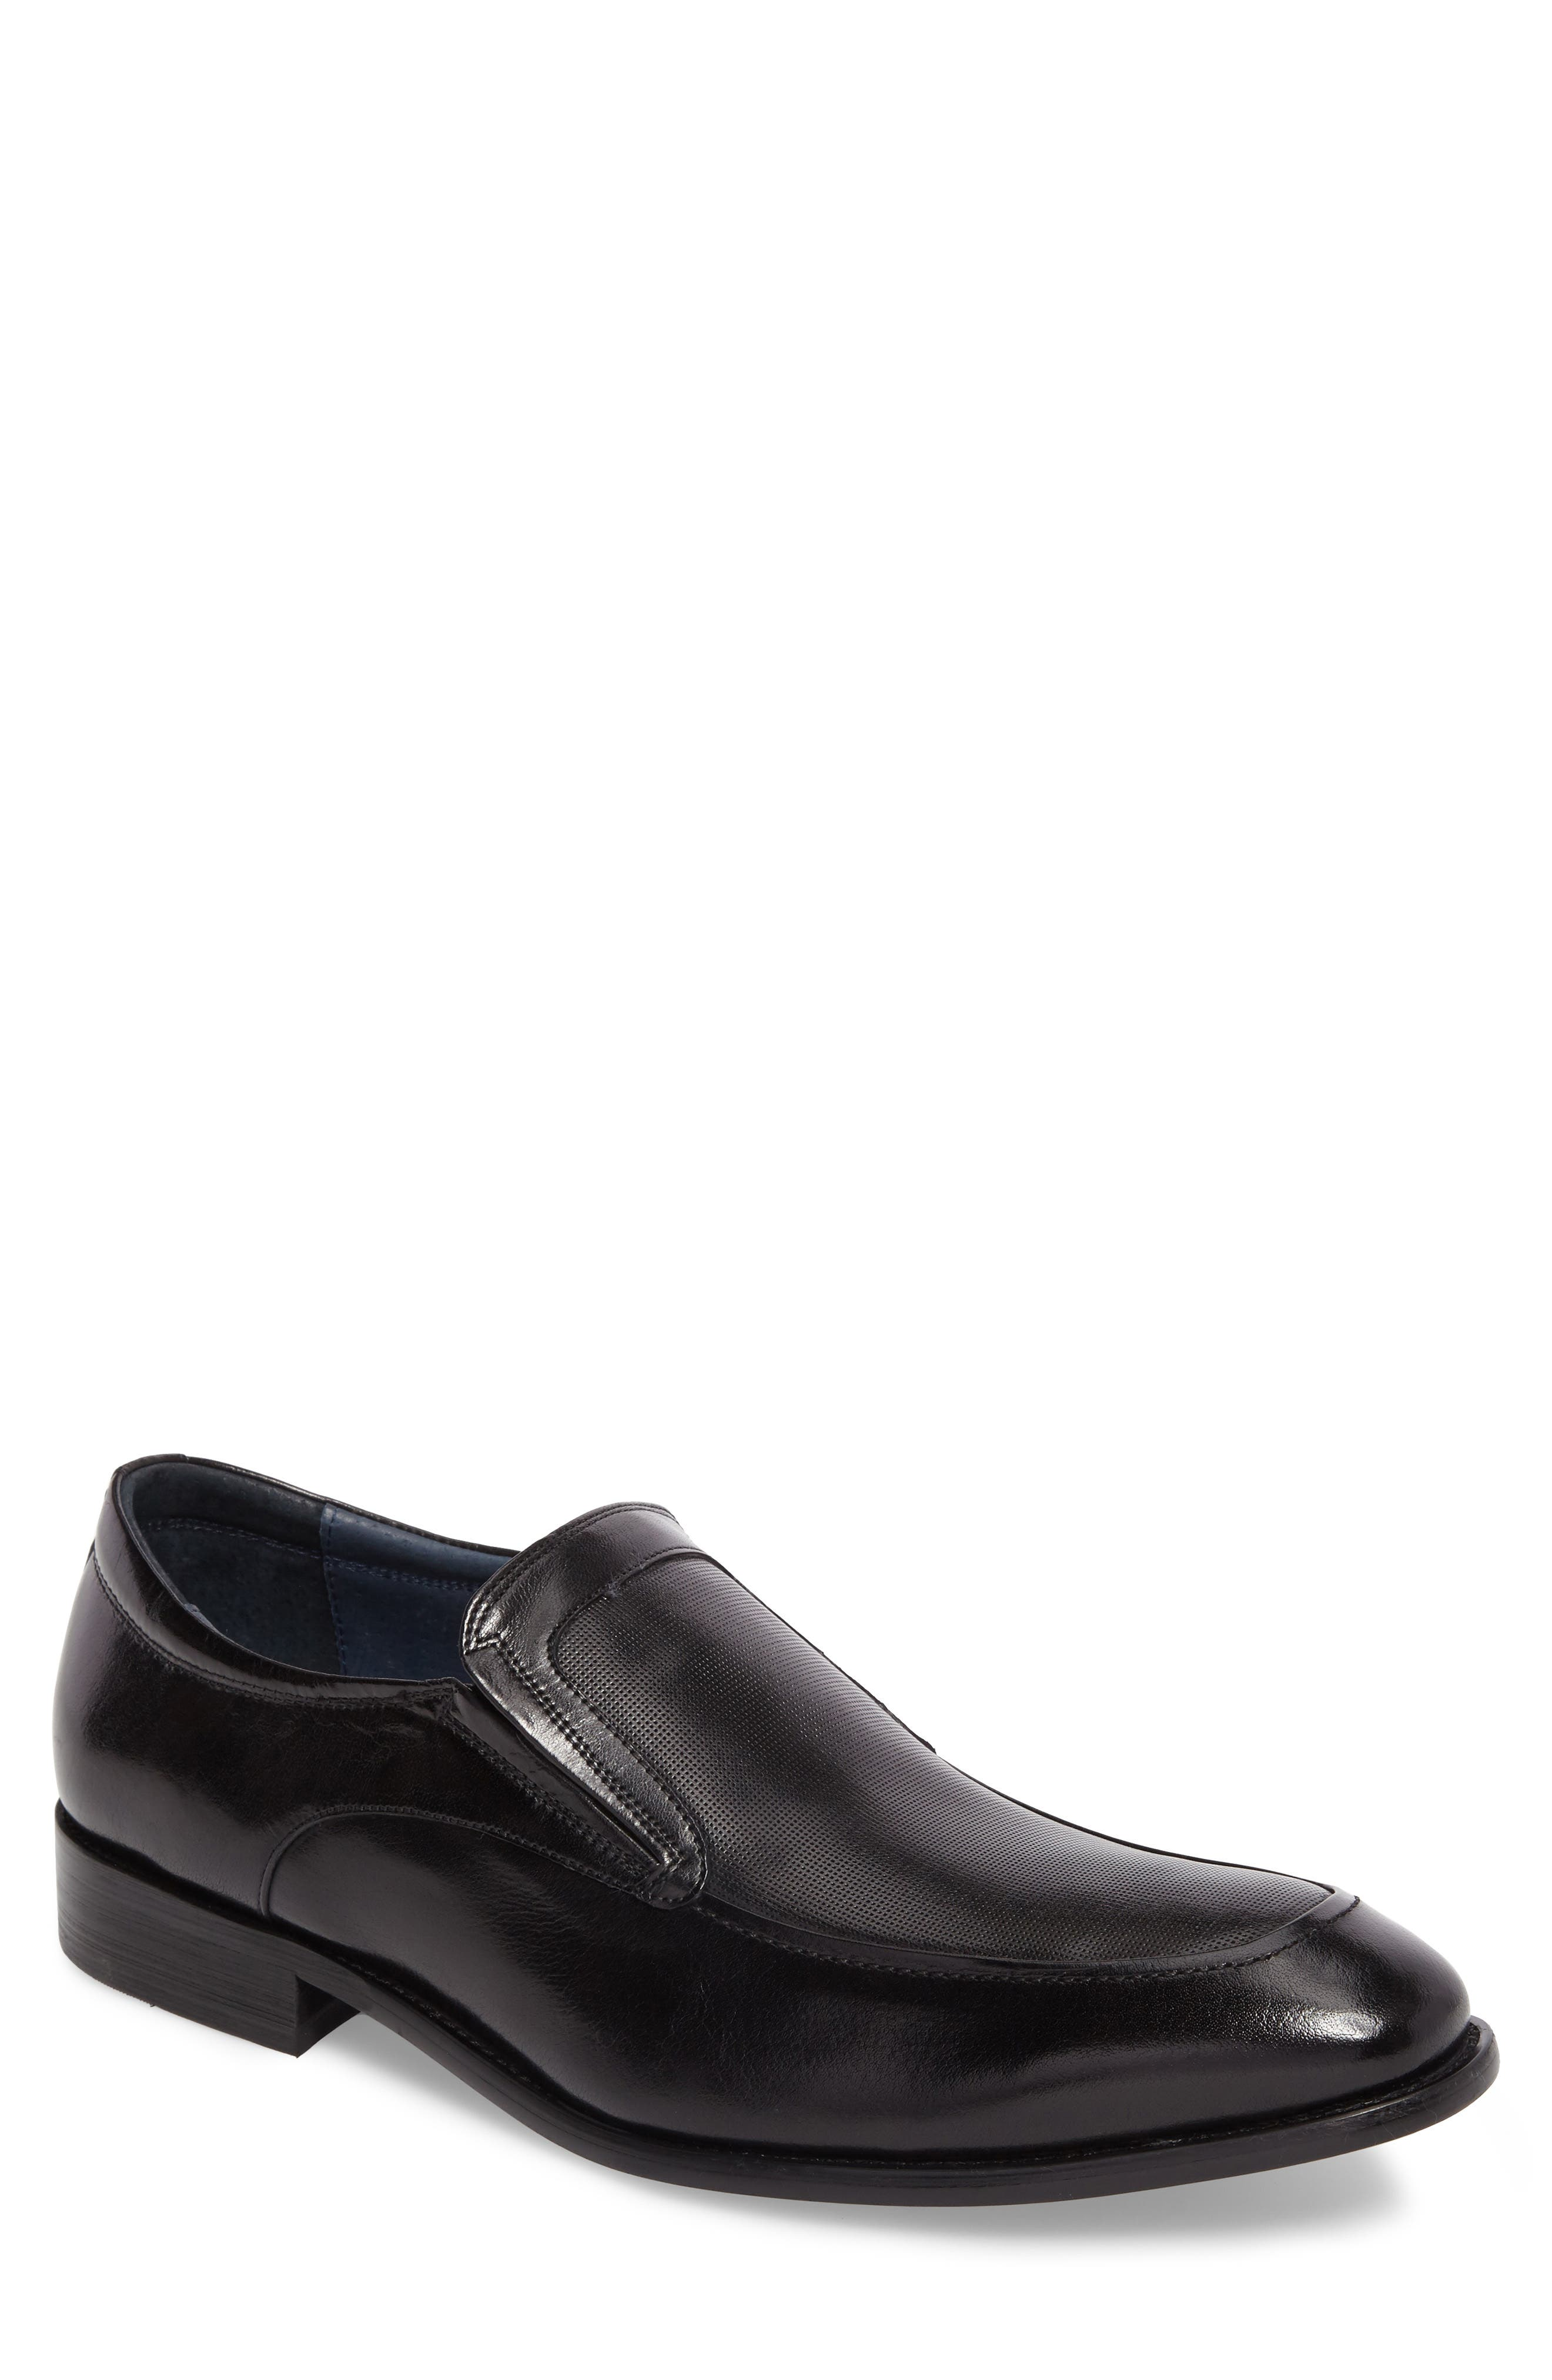 Jace Embossed Apron Toe Loafer,                         Main,                         color, 001